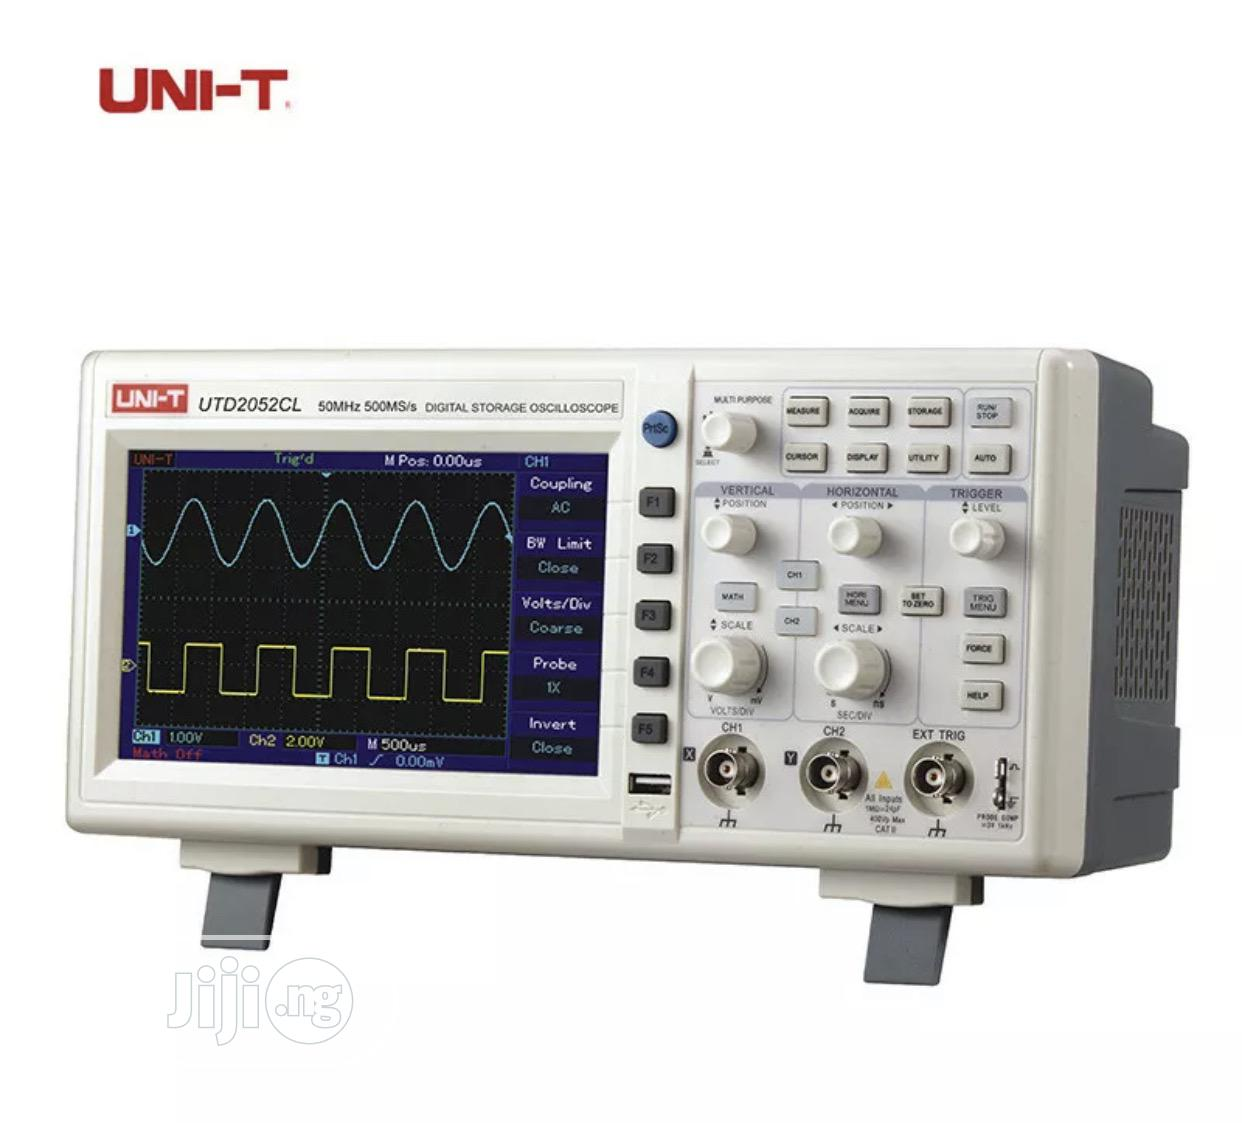 UTD2052CL Dual Channel Digital Storage Oscilloscope 50mhz | Medical Supplies & Equipment for sale in Ojo, Lagos State, Nigeria